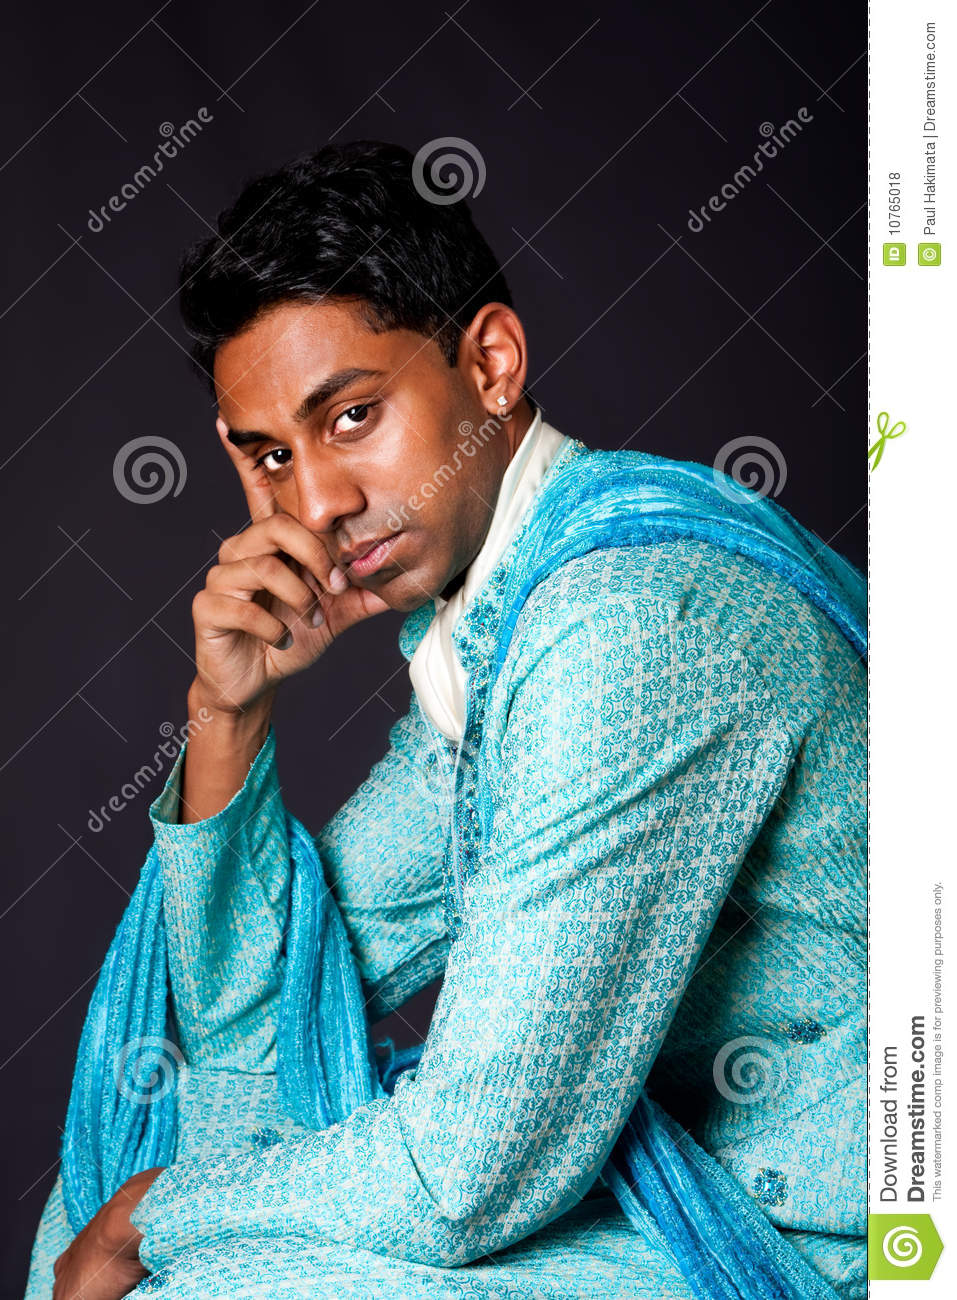 hindu man sitting and thinking royalty free stock photos